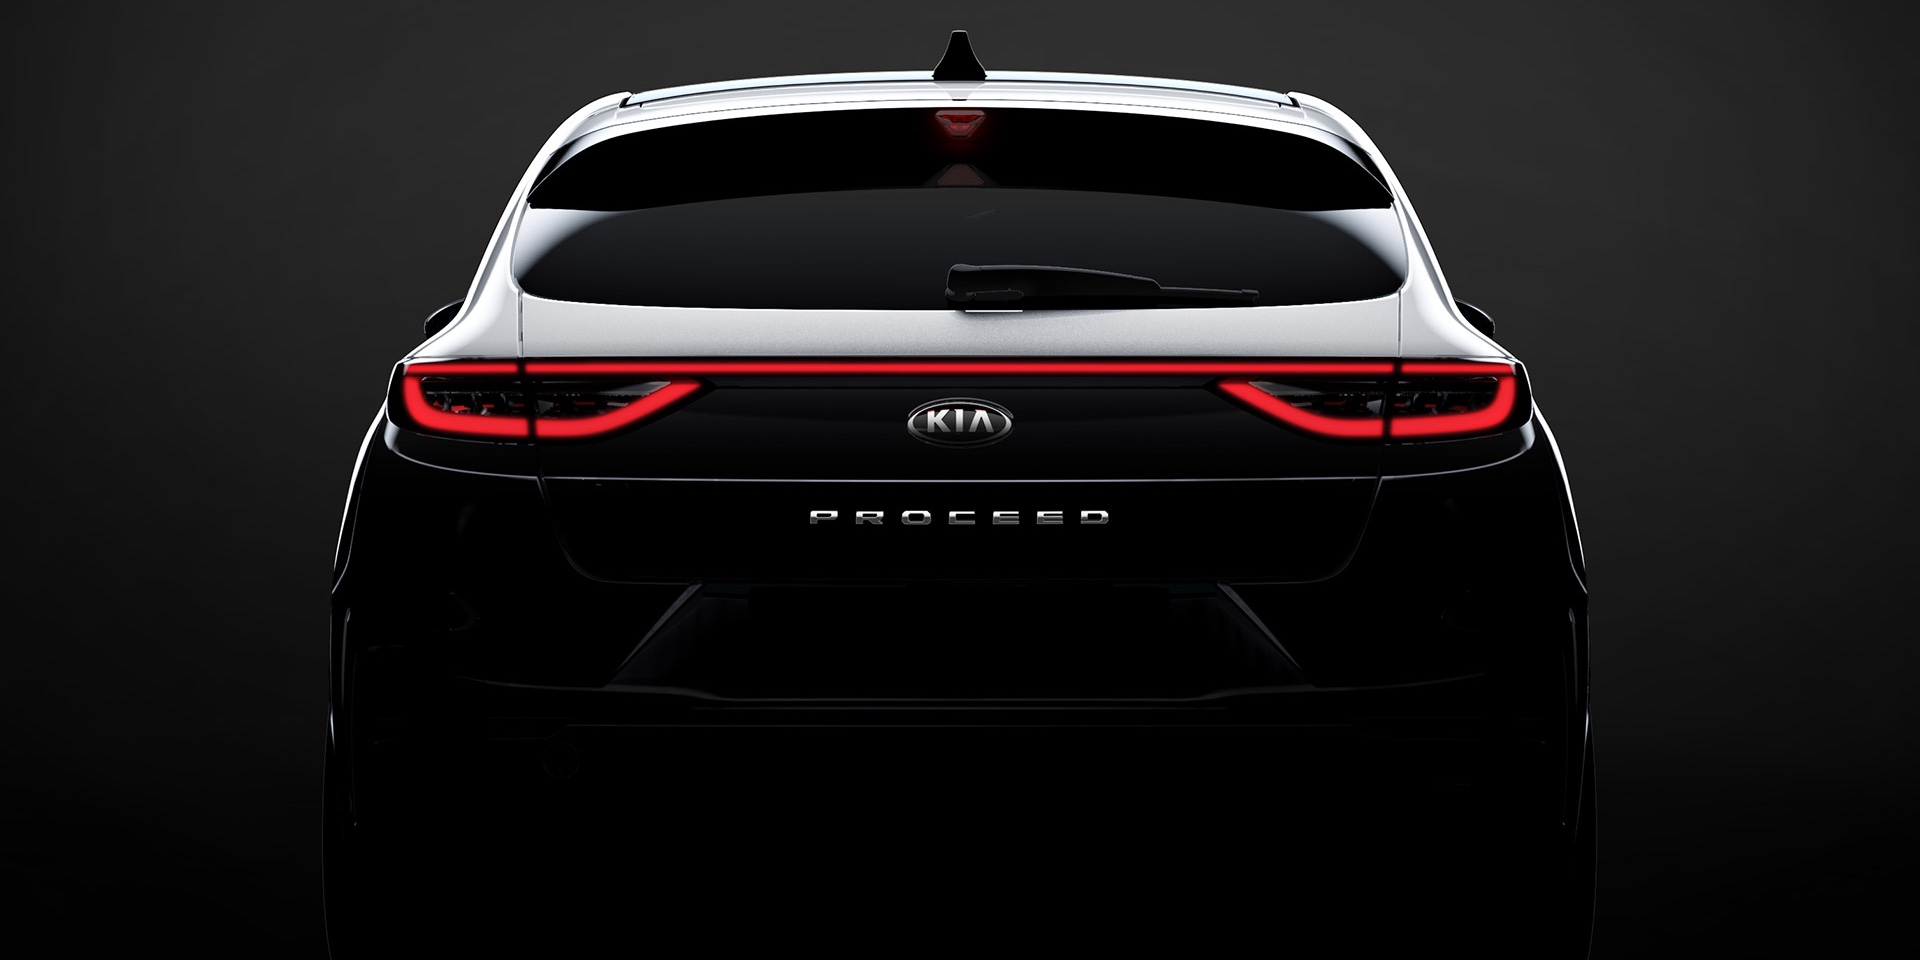 https://i0.wp.com/www.carspiritpk.com/wp-content/uploads/2018/08/Kia-ProCeed-sketch-teaser.jpg?fit=1920%2C960&ssl=1